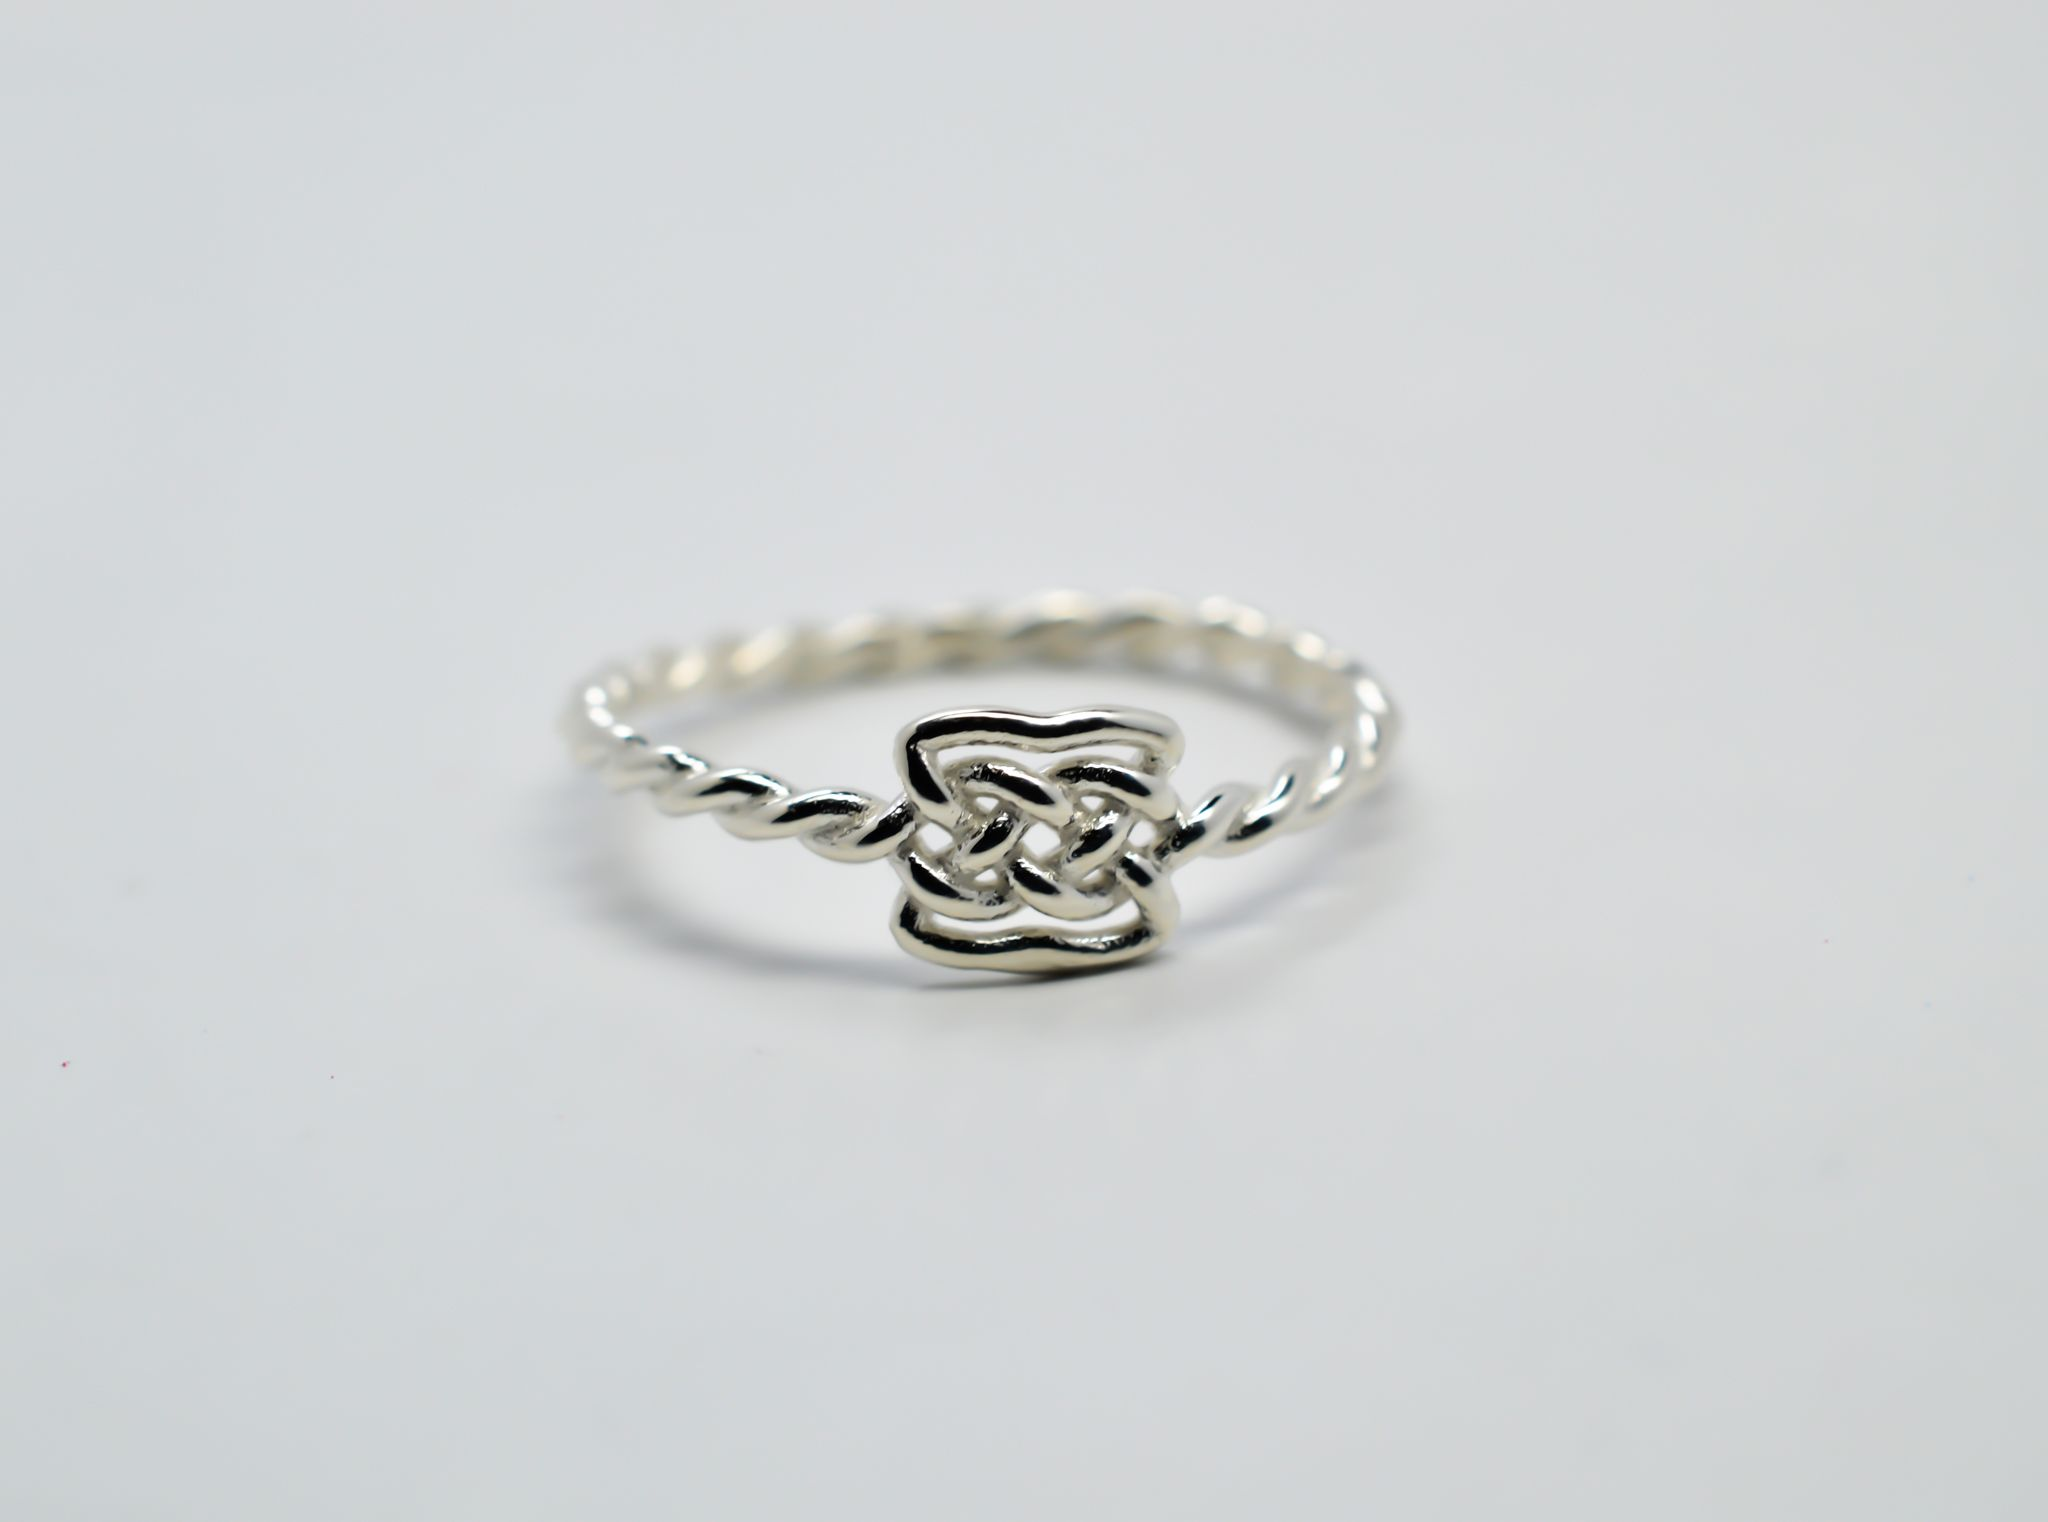 Celtic Knot Ring | Jewelry and accessories | Pinterest | Knot rings ...